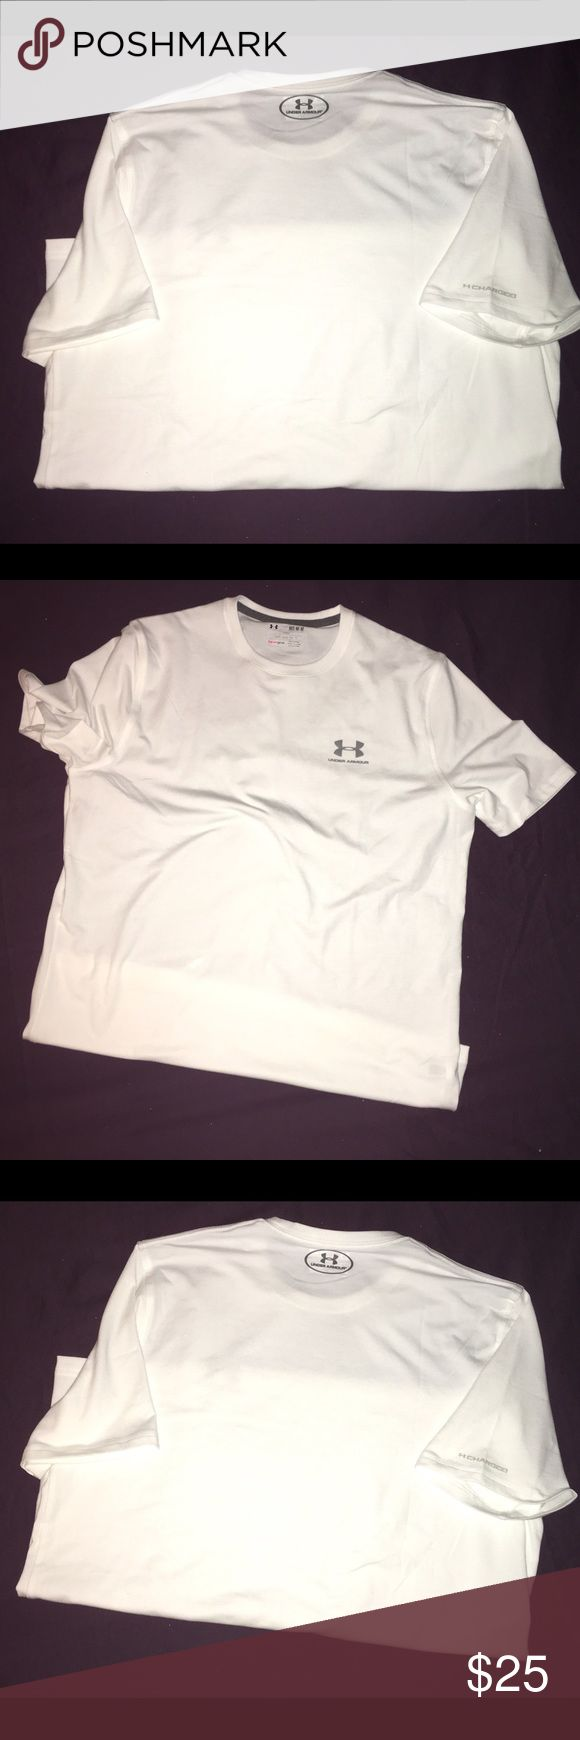 """Women's Size Medium Under Armour Heat-Gear Tee. ✨Brand New✨ Women's size M """"Heat-Gear Under Armour Tee. White w/ silver logo on chest & right arm. Only tried on, no tags. Fits loose. Under Armour Tops Tees - Short Sleeve"""